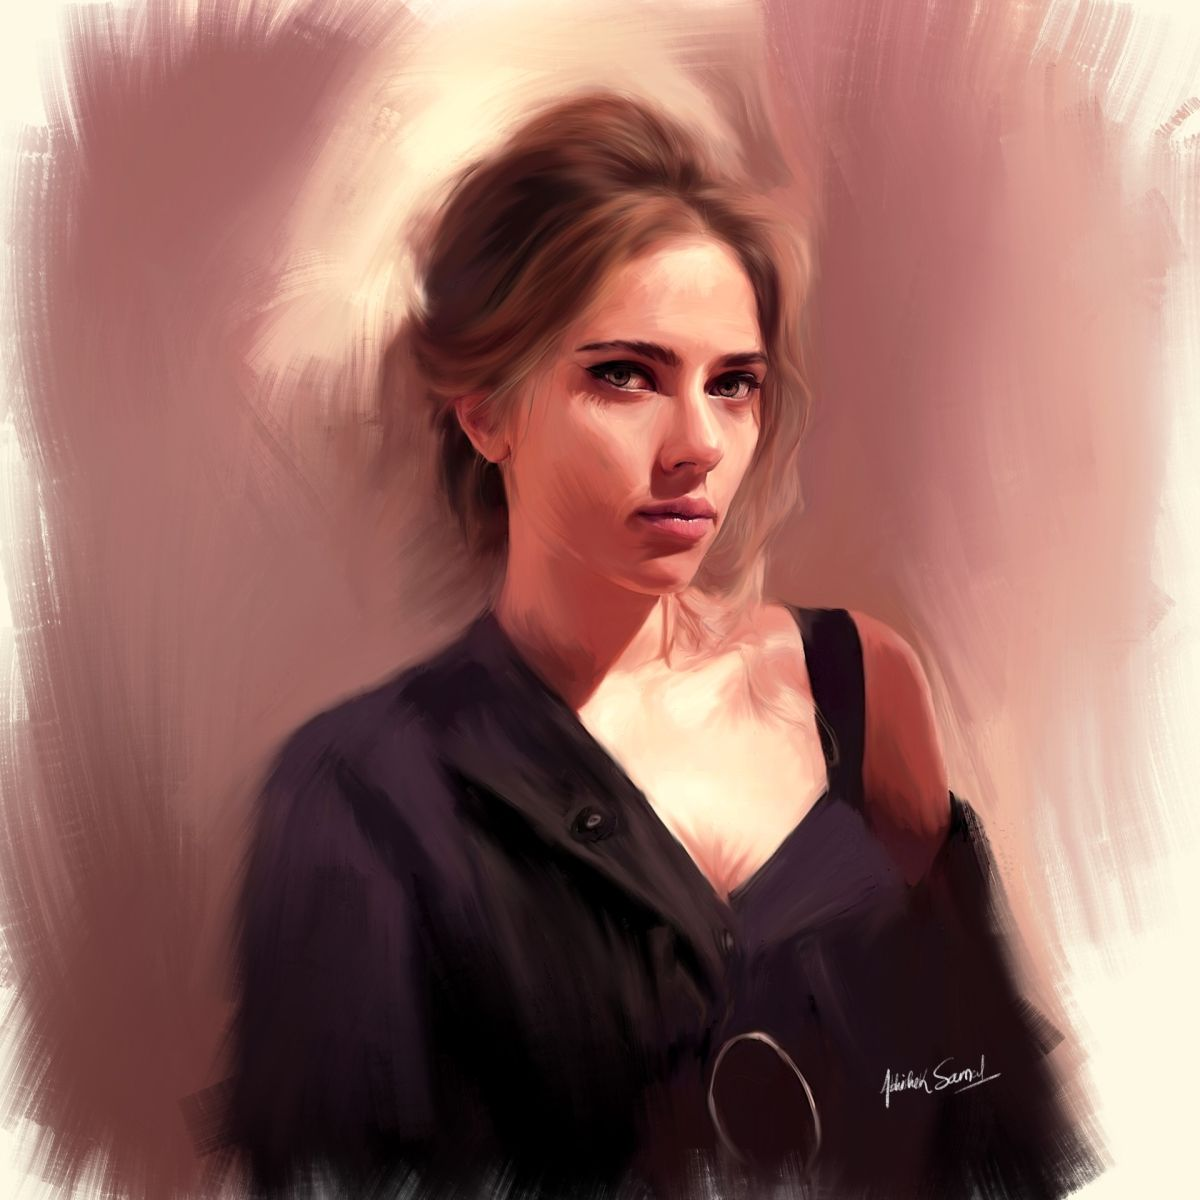 digital painting celebrity portrait scarlett johansson by abhishek samal